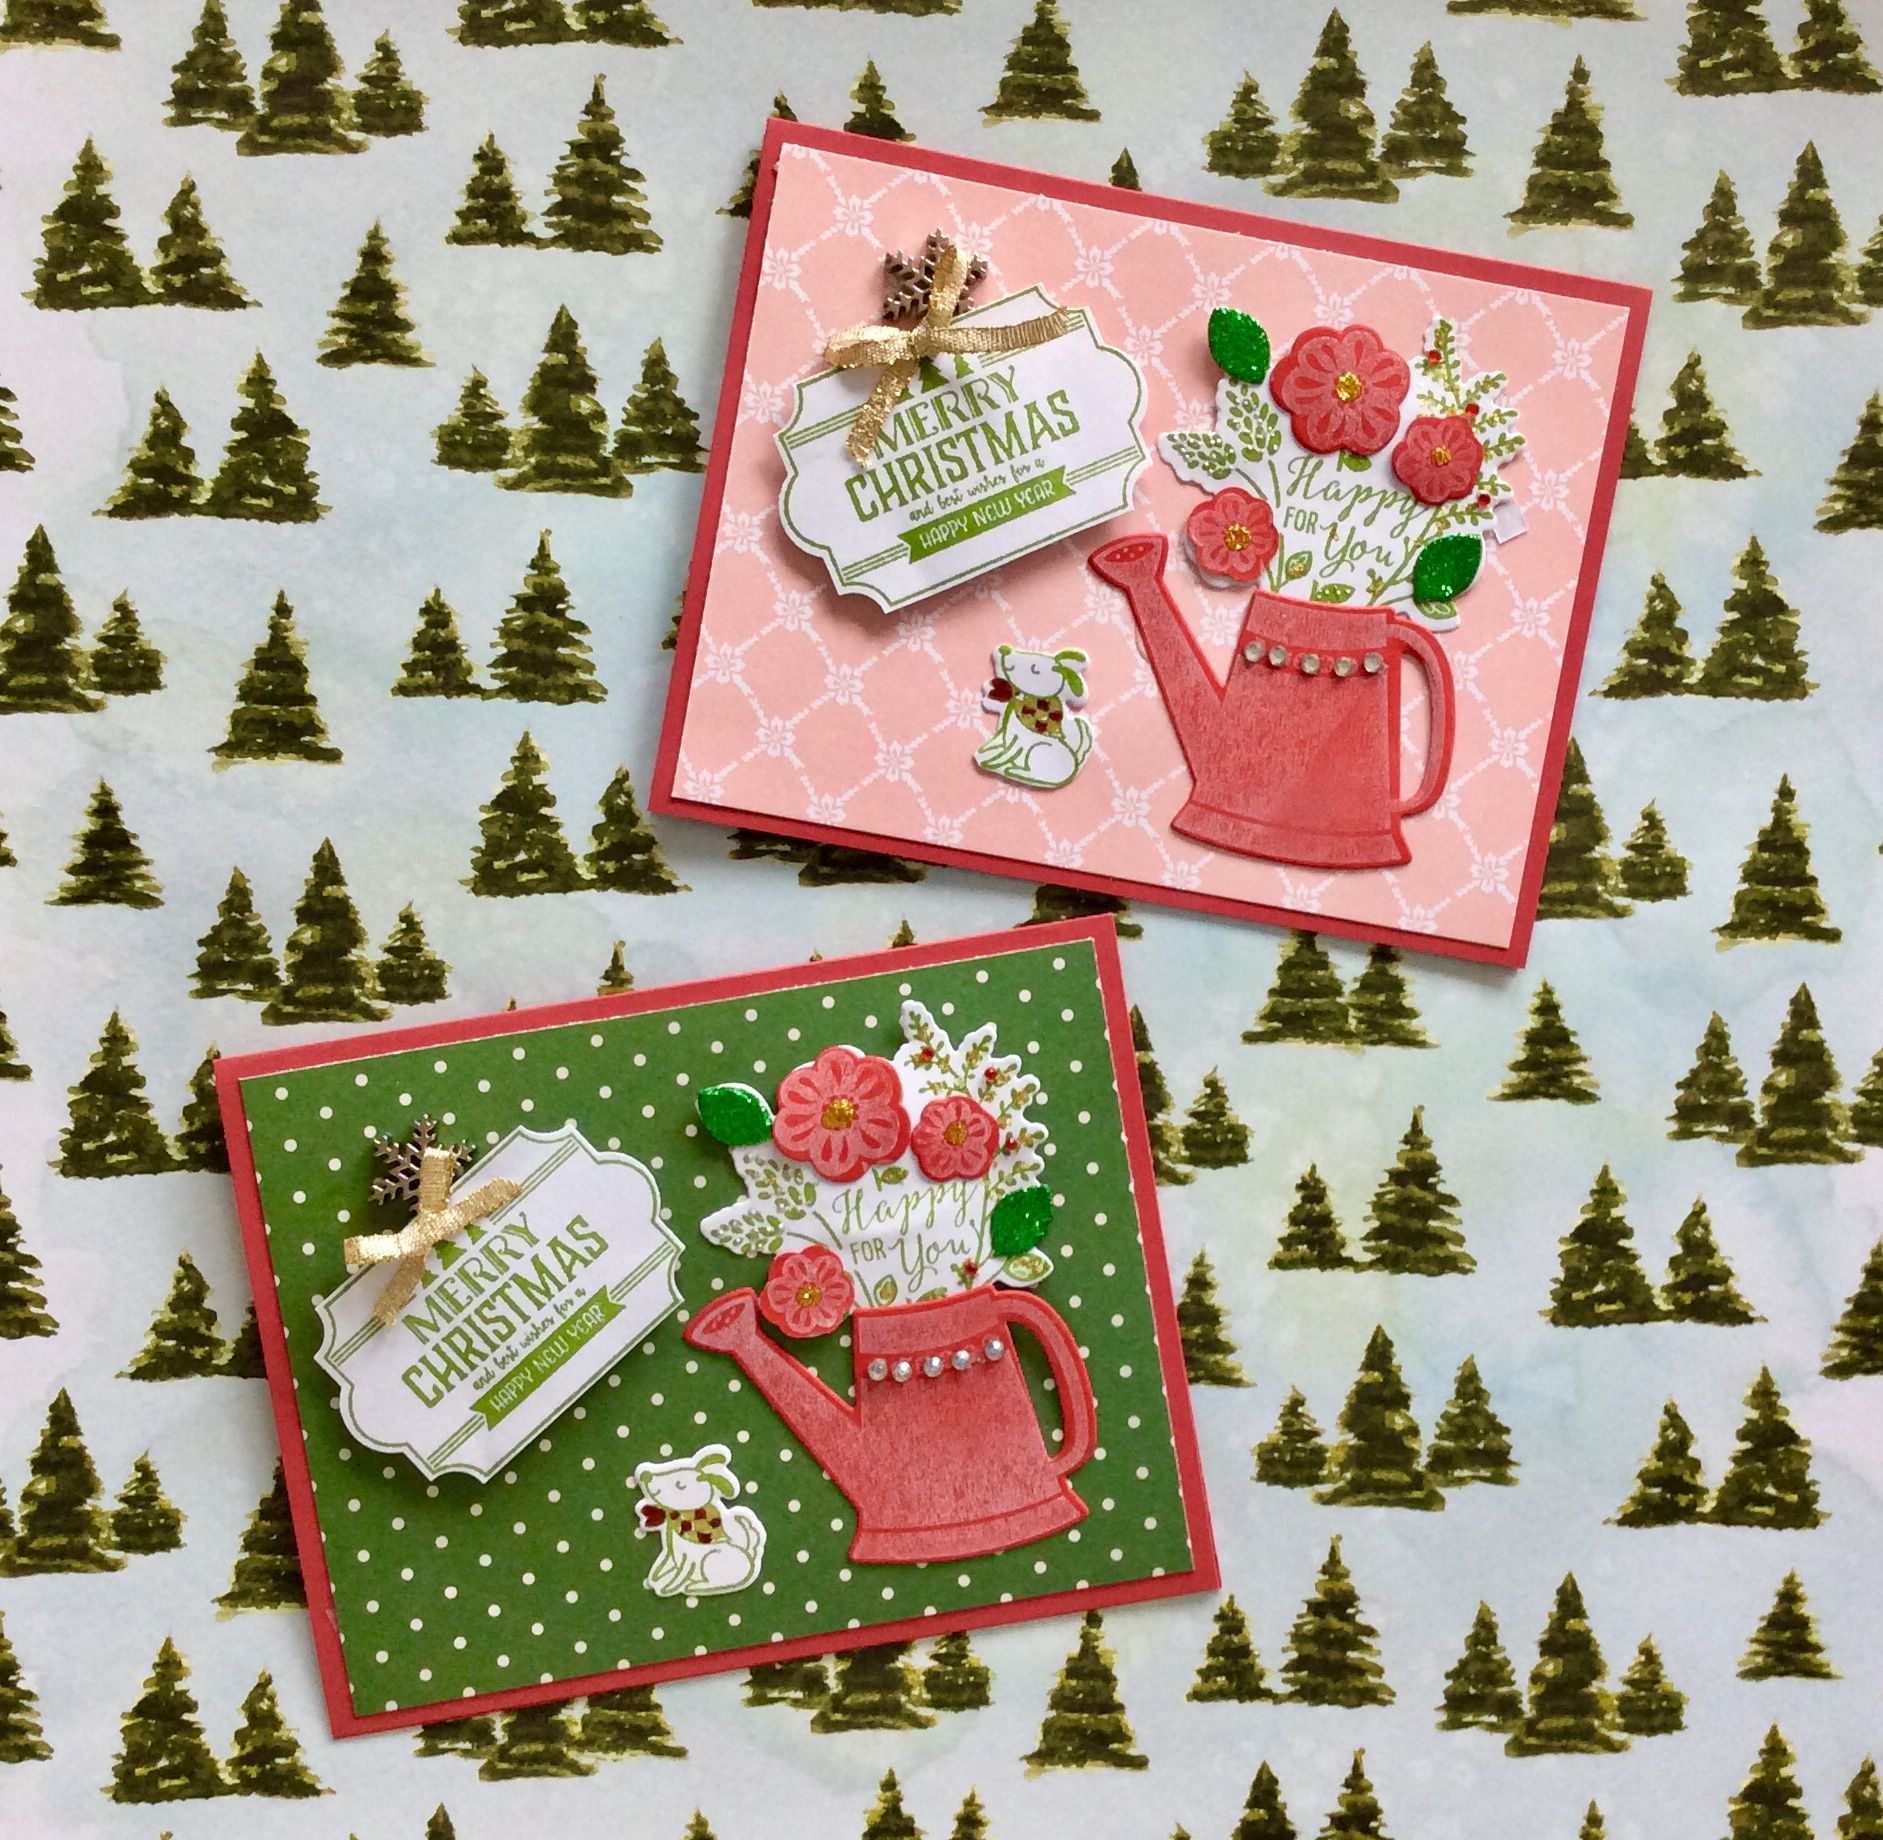 Stampin up Grown with love Christmas cards | Scrapbooking ...